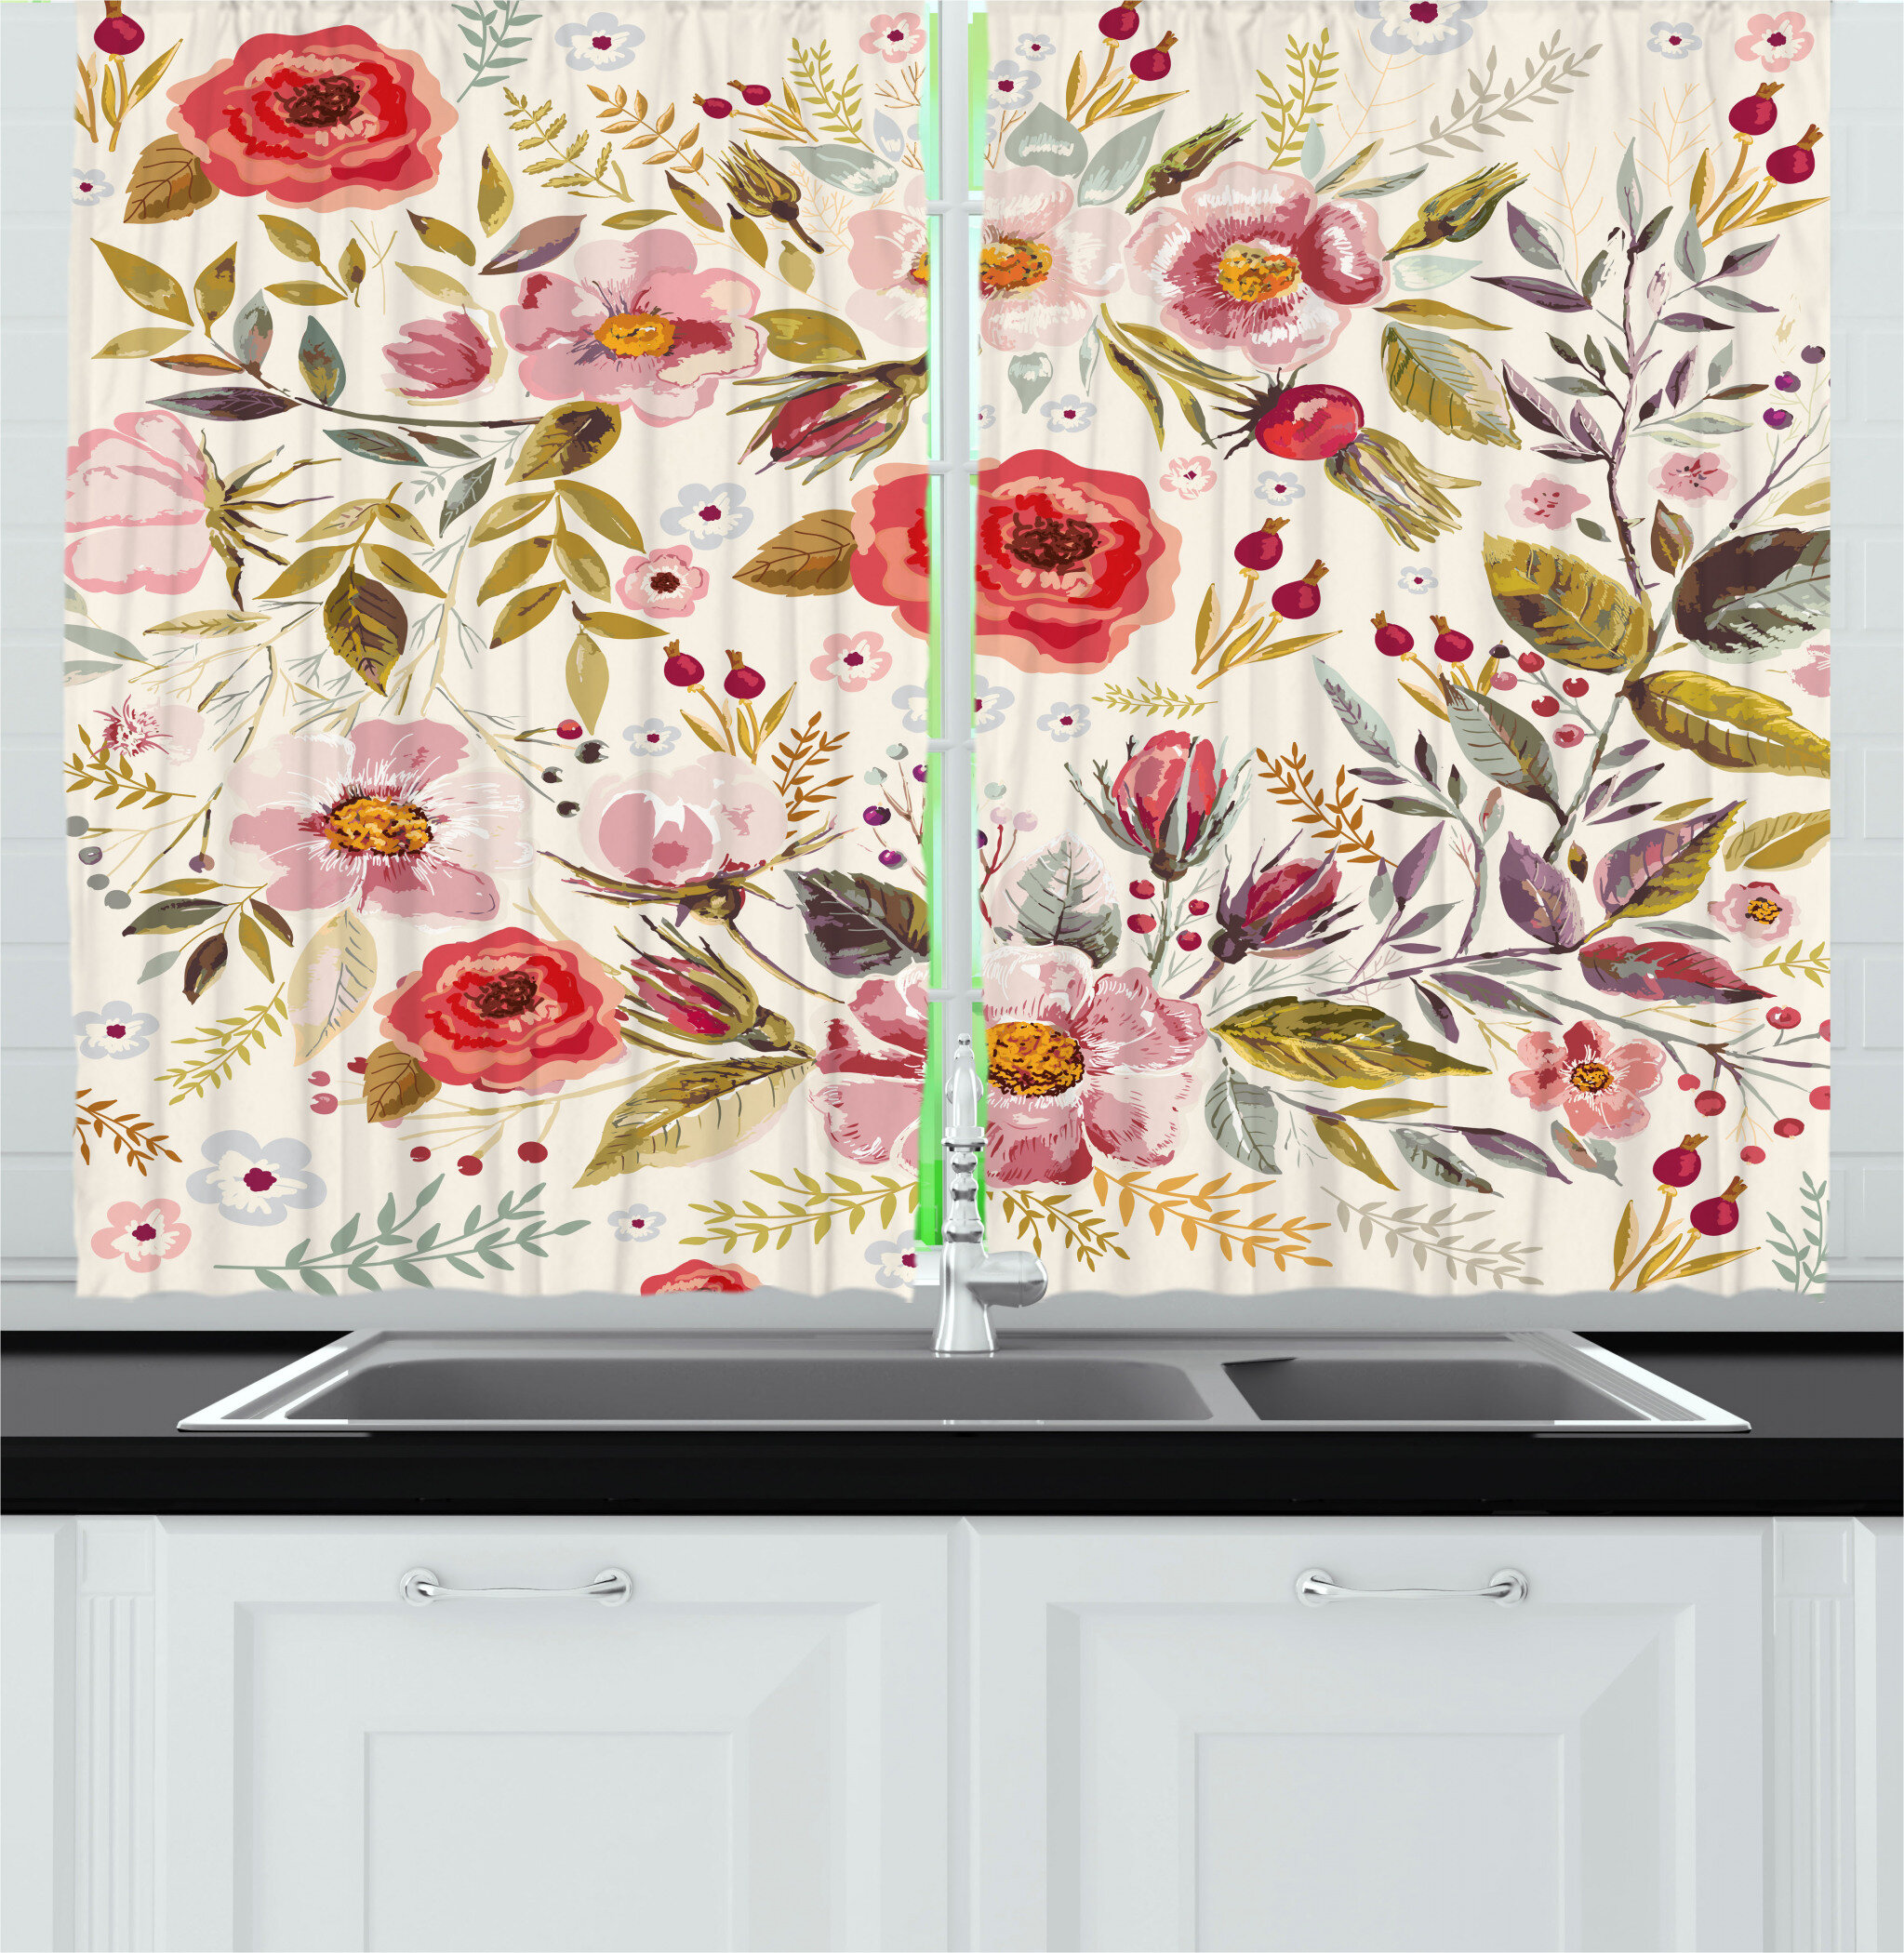 East Urban Home Floral 2 Piece Kitchen Curtain Wayfair